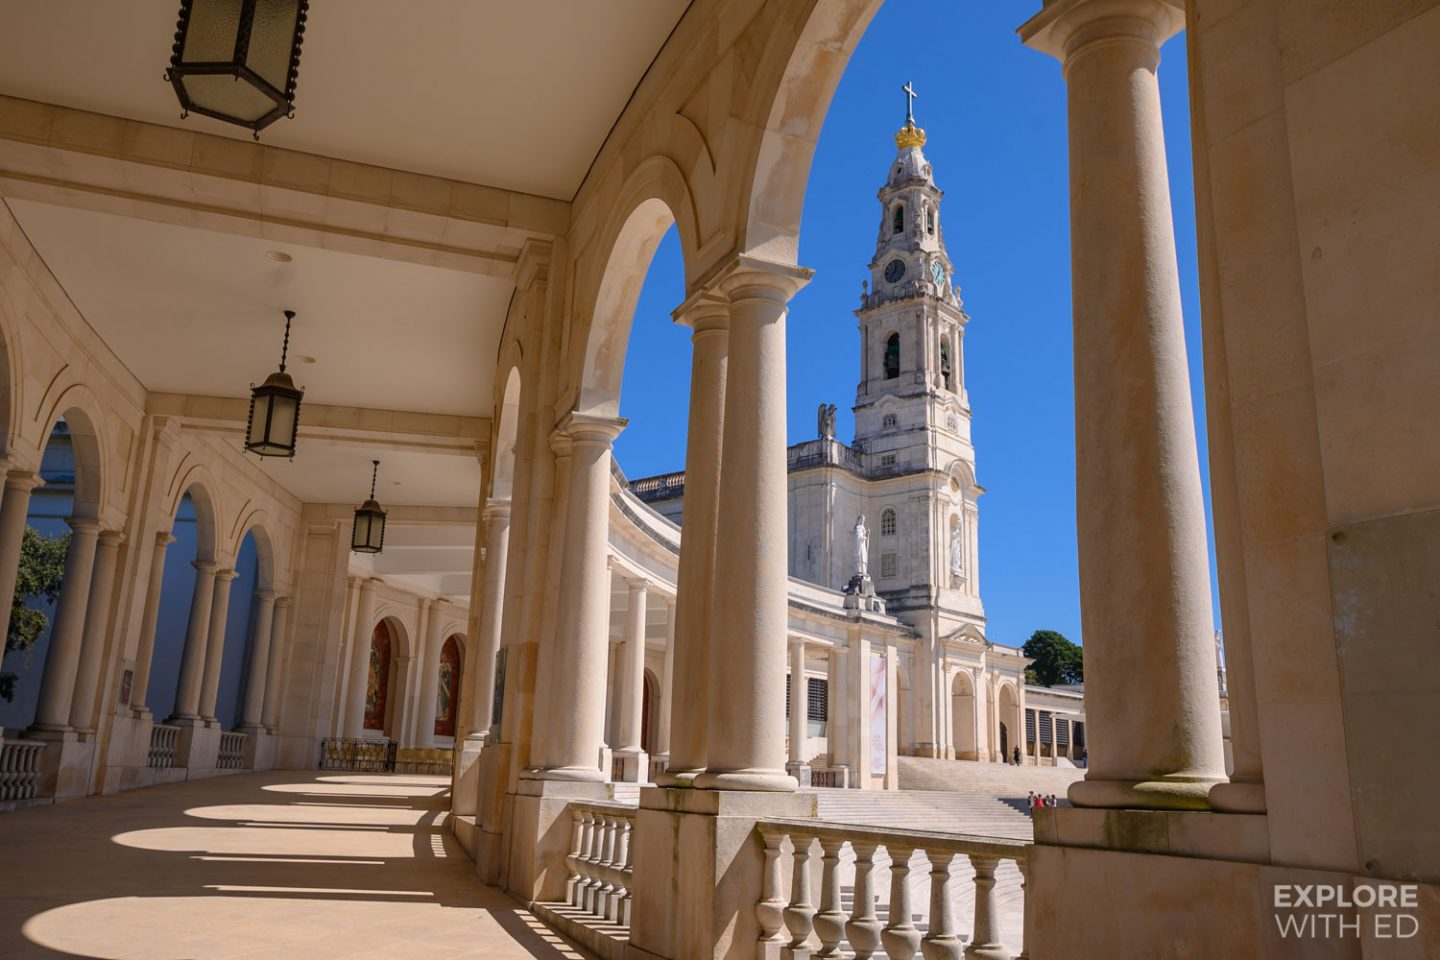 Beautiful arch columns leading to the Basilica of Our Lady of the Rosary